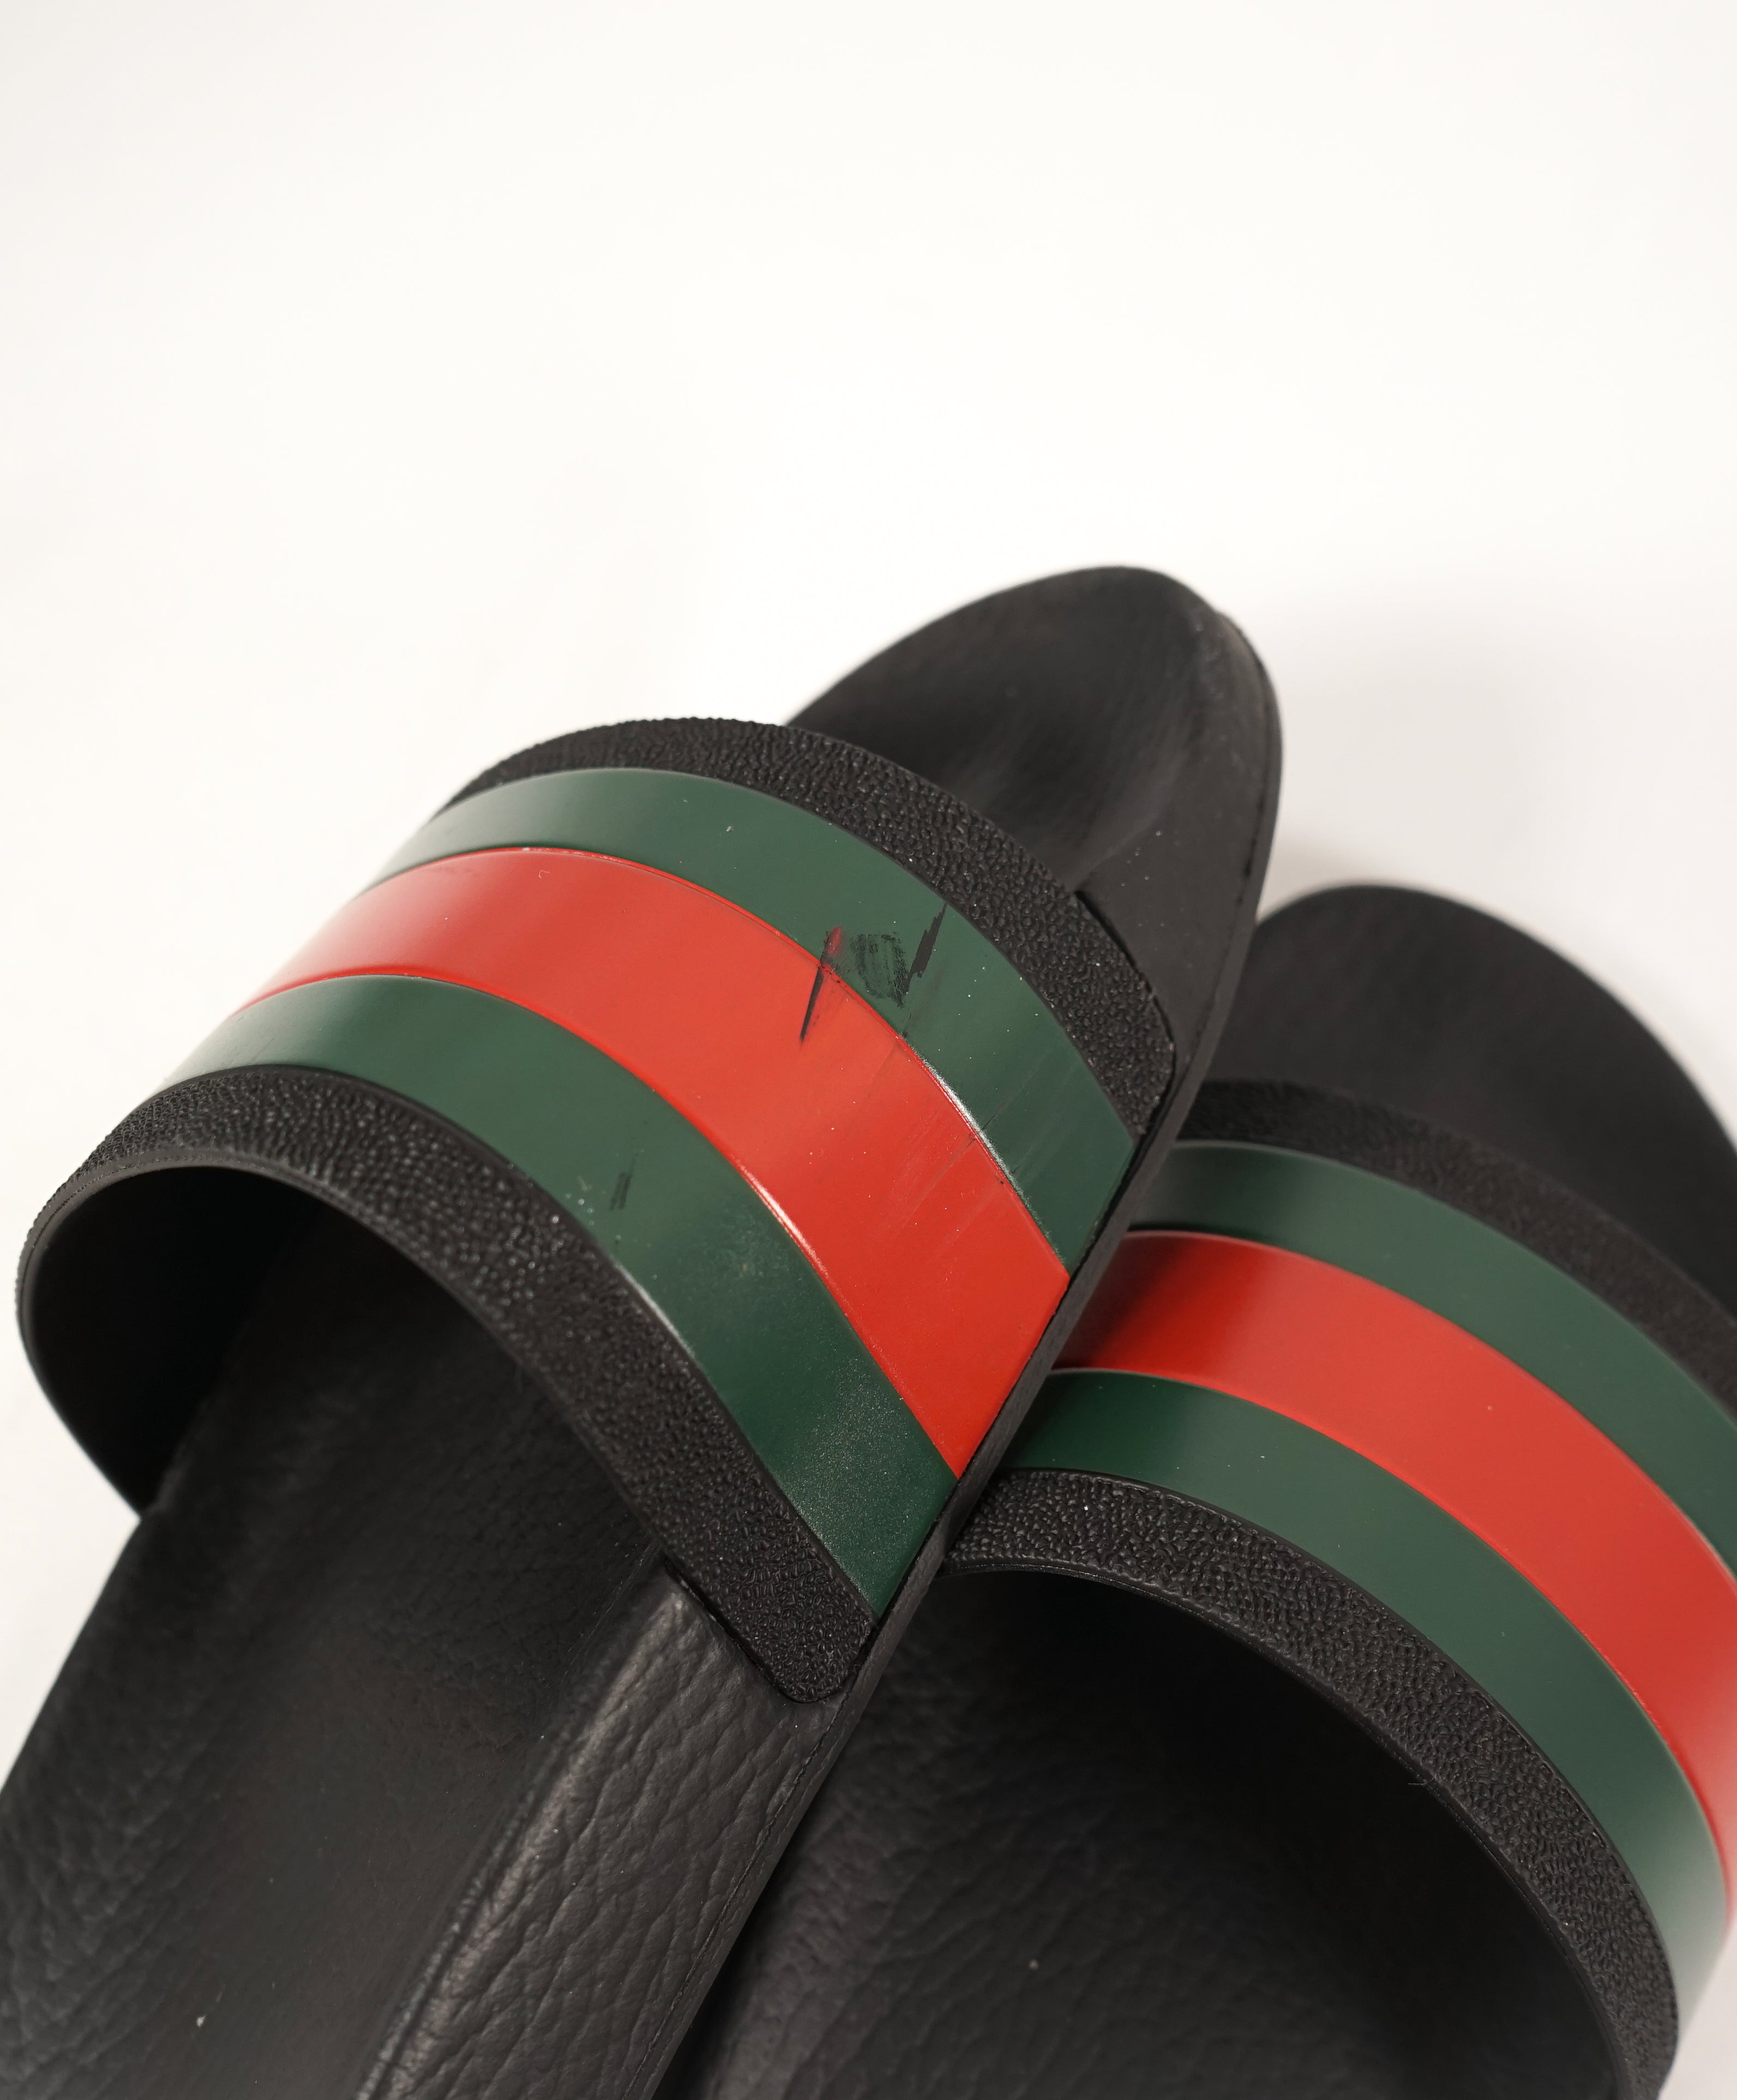 "GUCCI - Iconic Green & Red Stripe Slides ""Pursuit 72"" Slippers - 7"